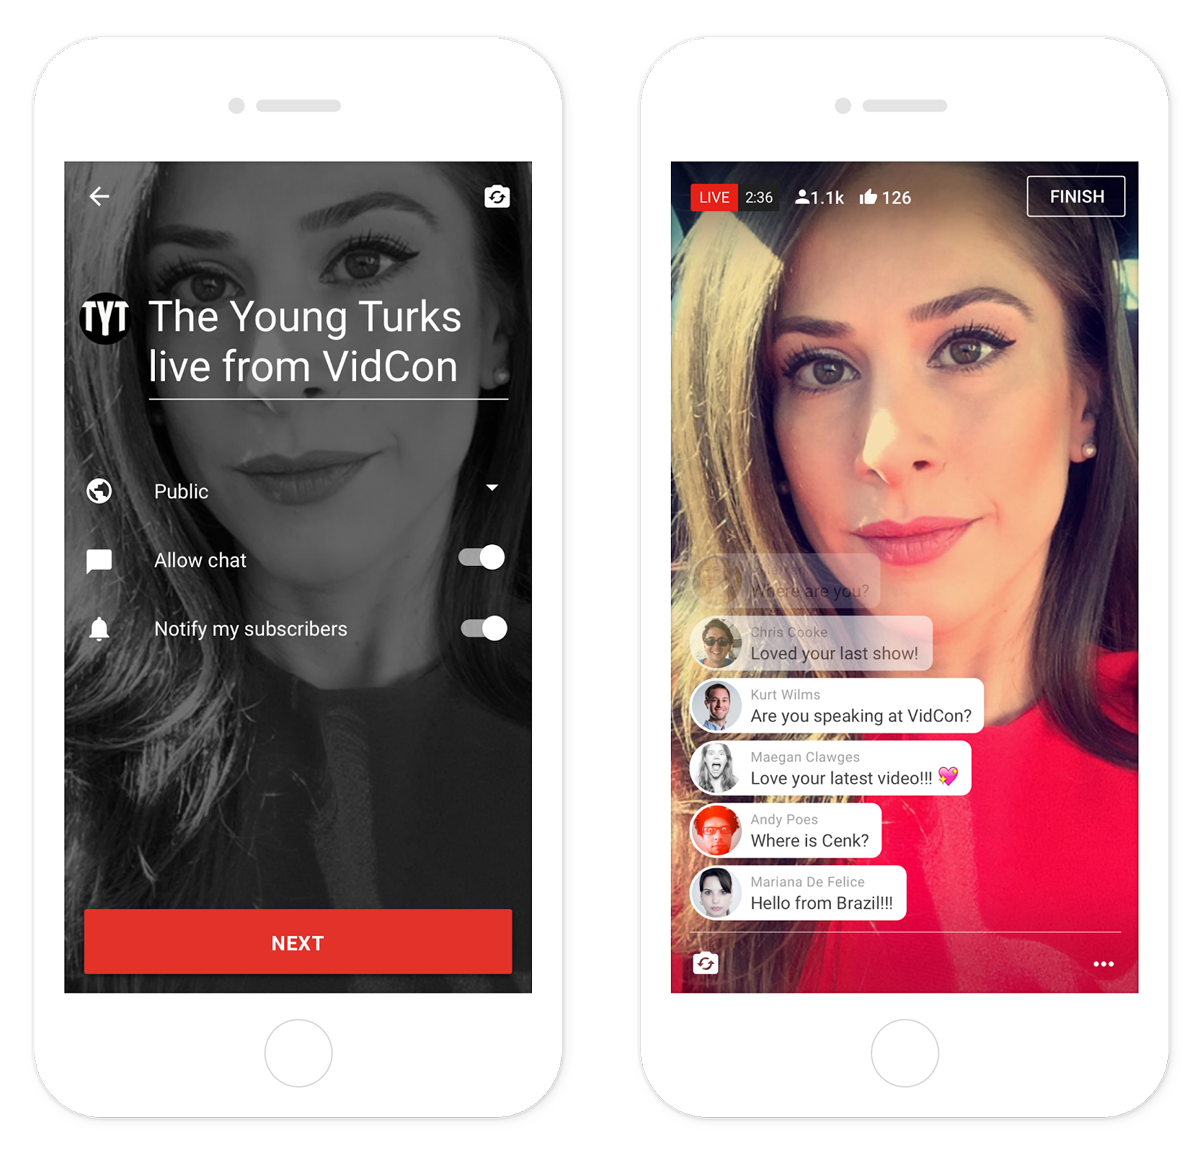 youtube-live-mobile-influenth